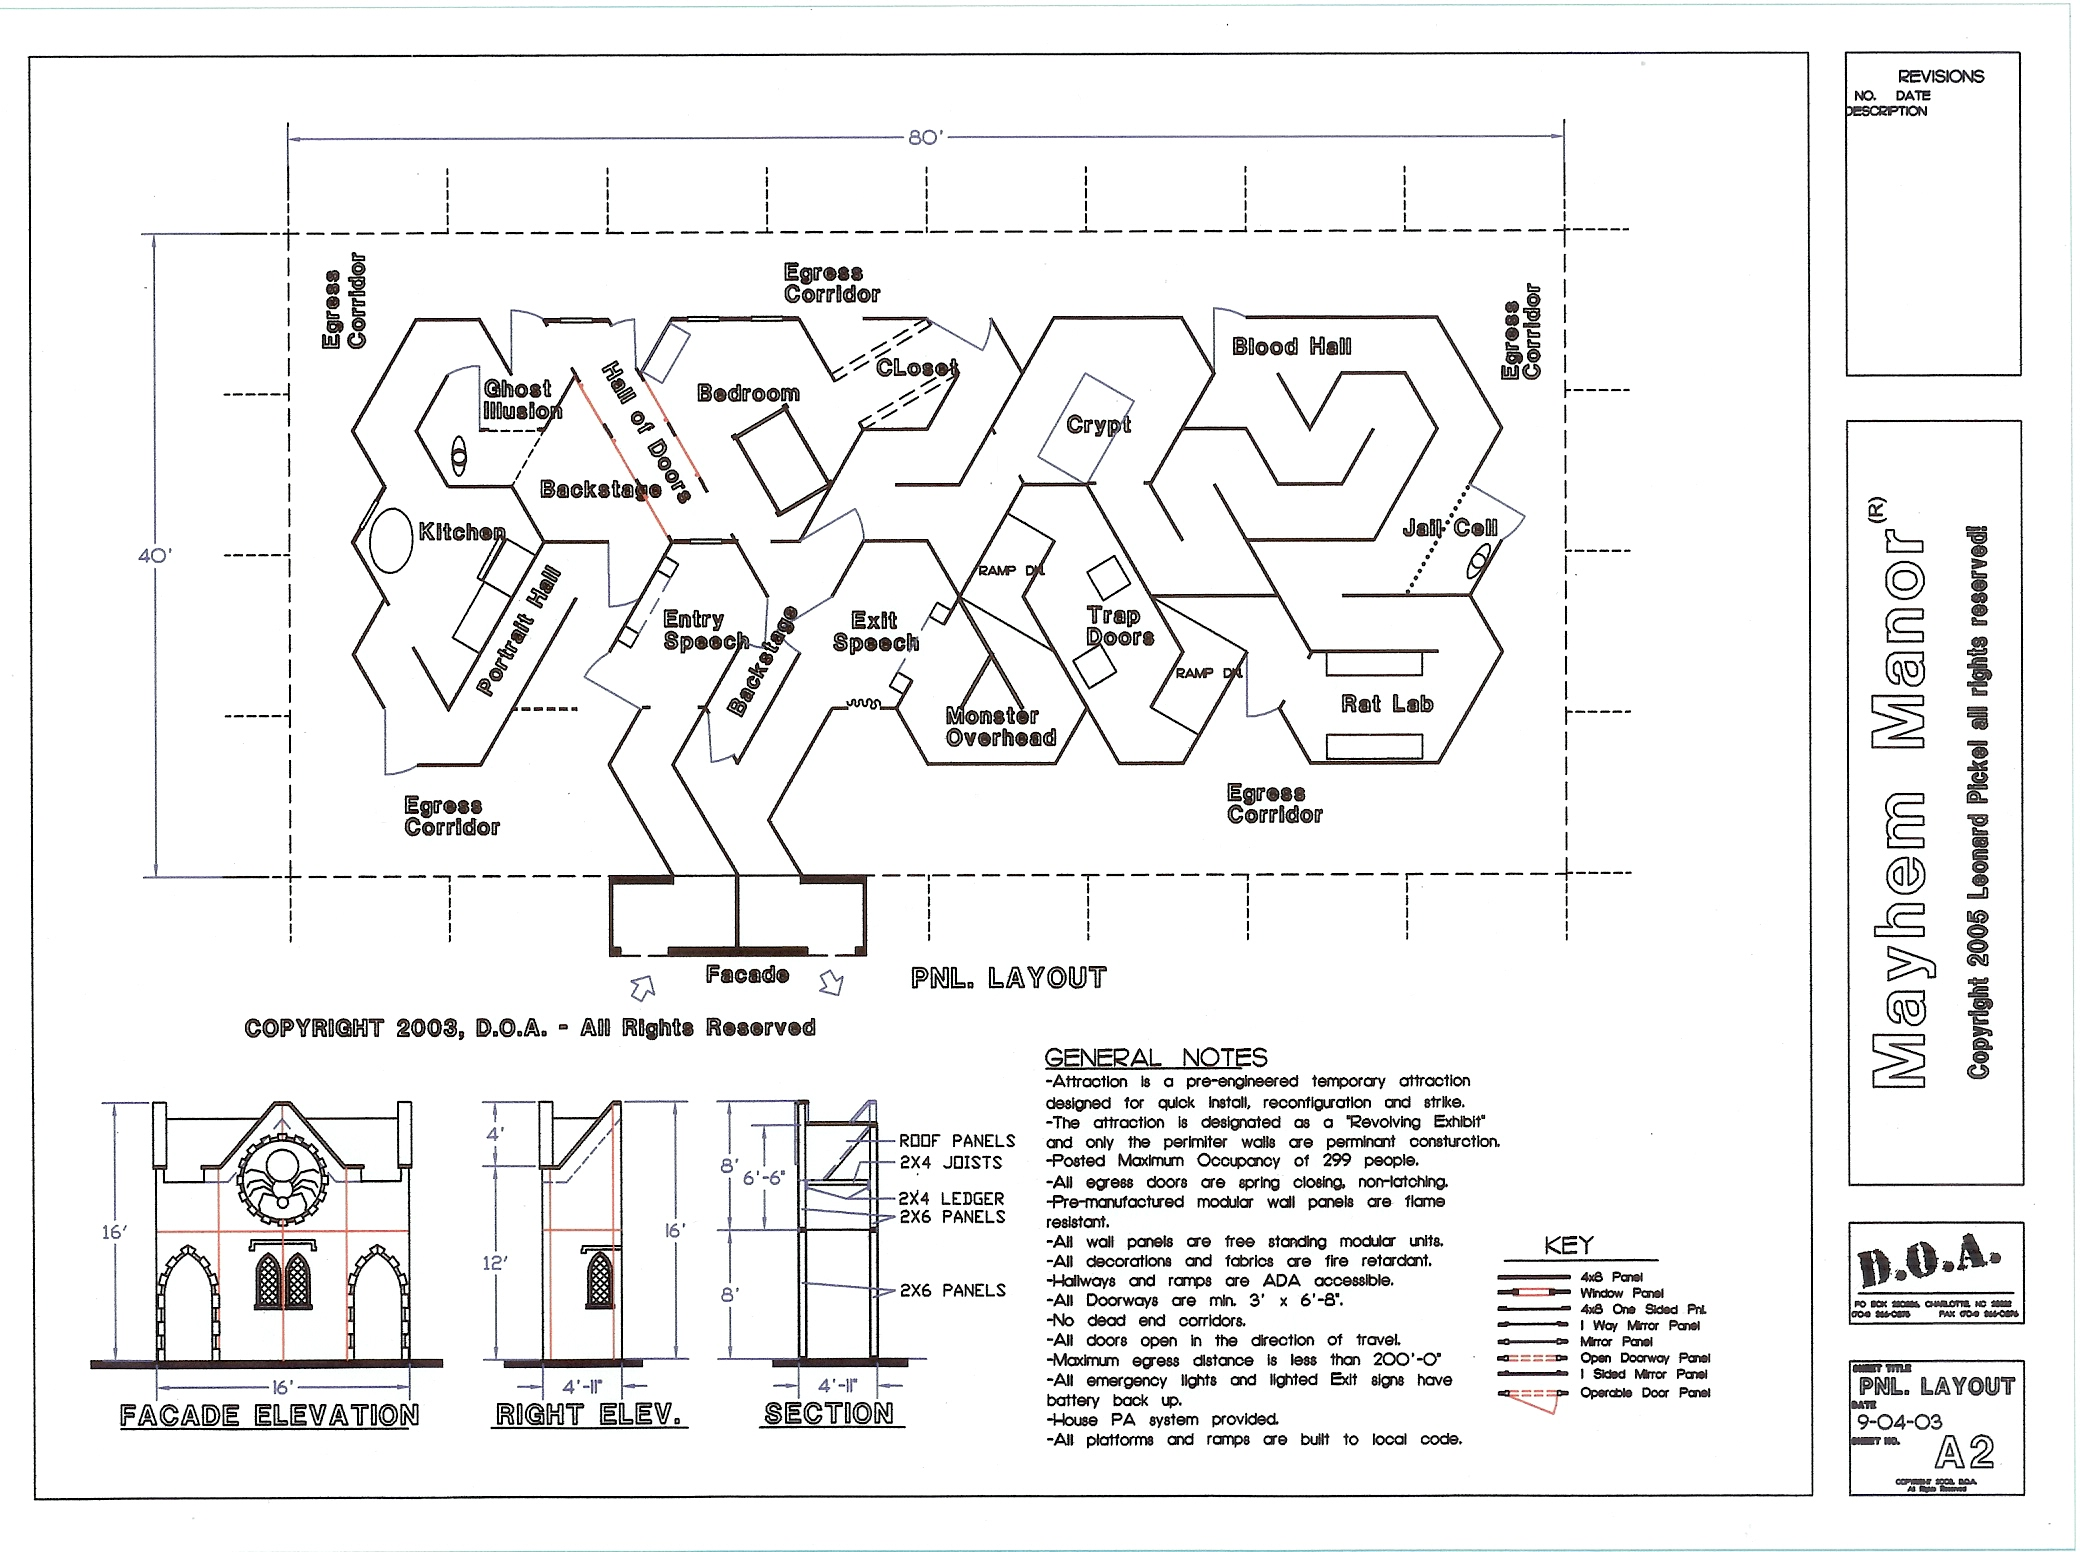 Haunted house maze layouts